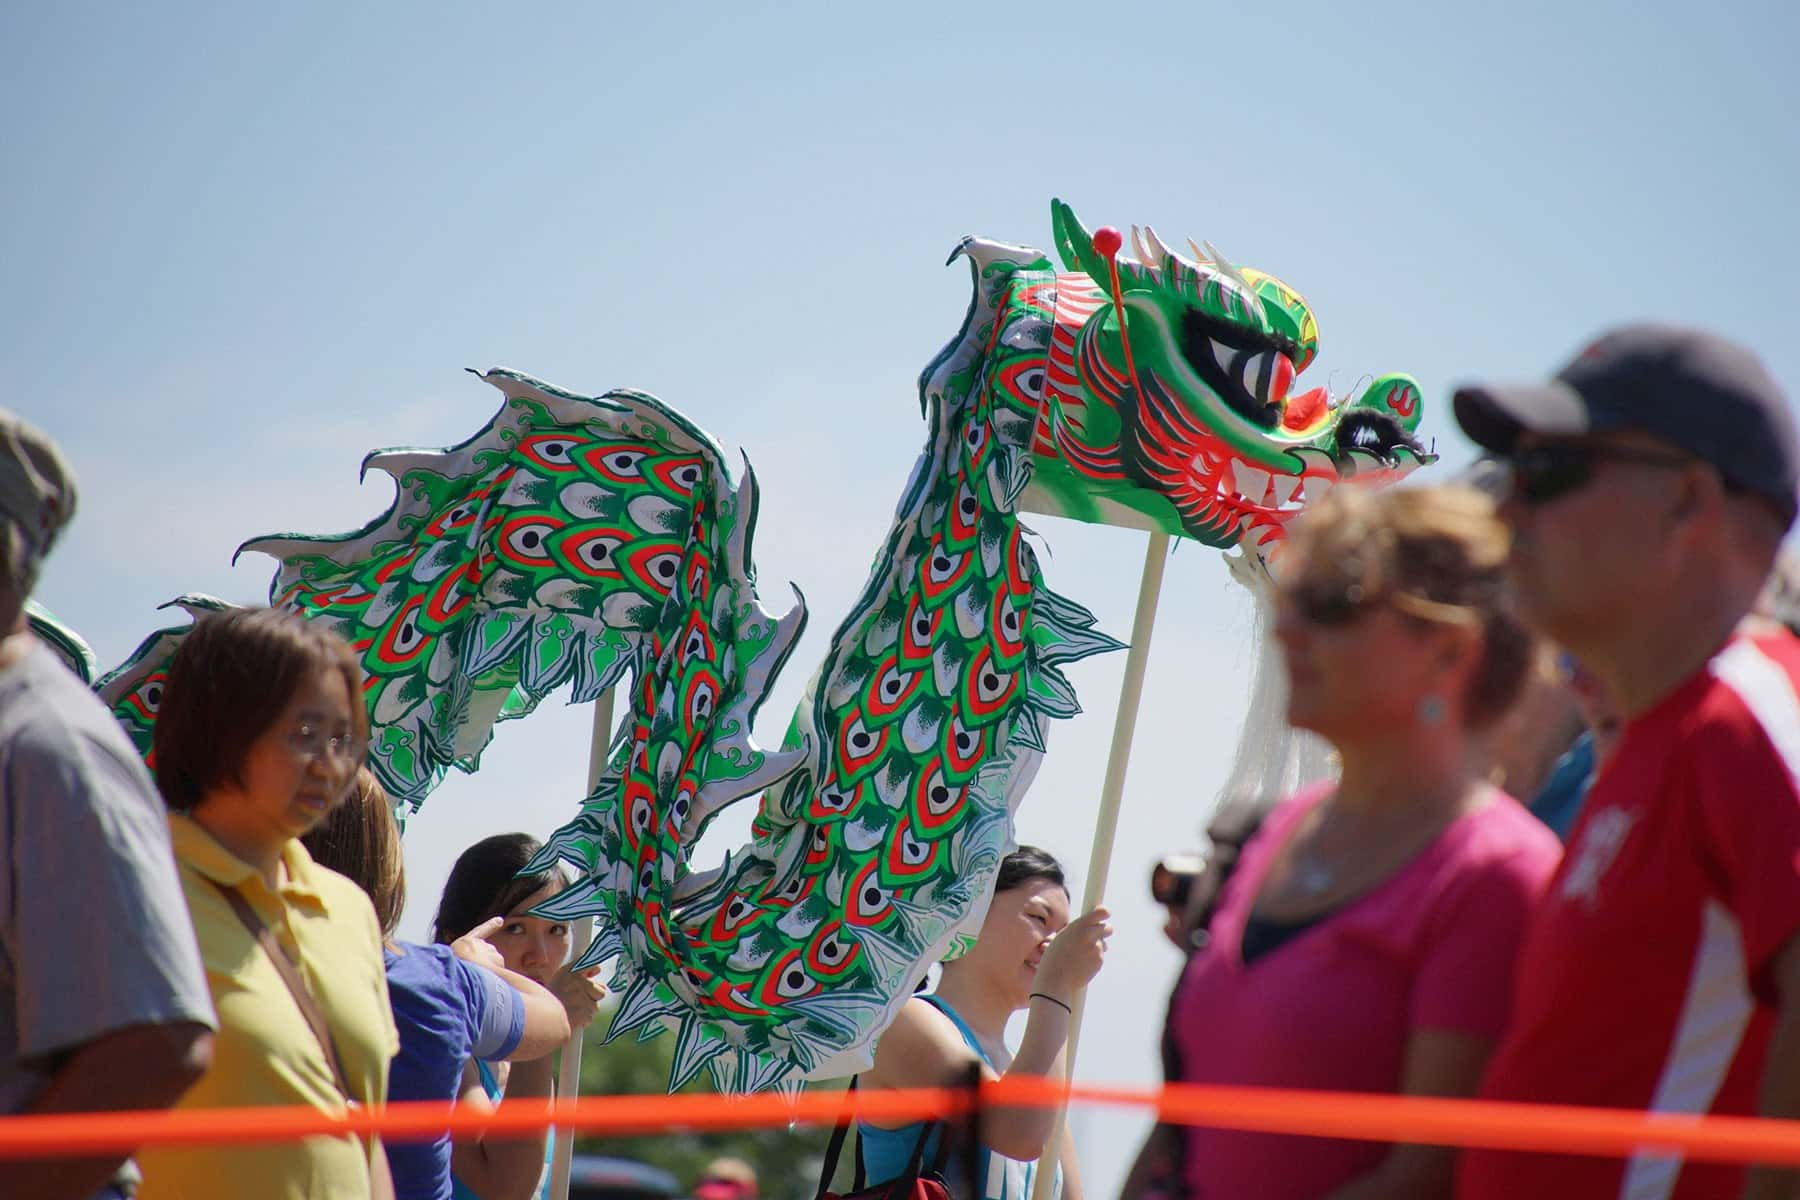 080116_dragonboat_album_02_01